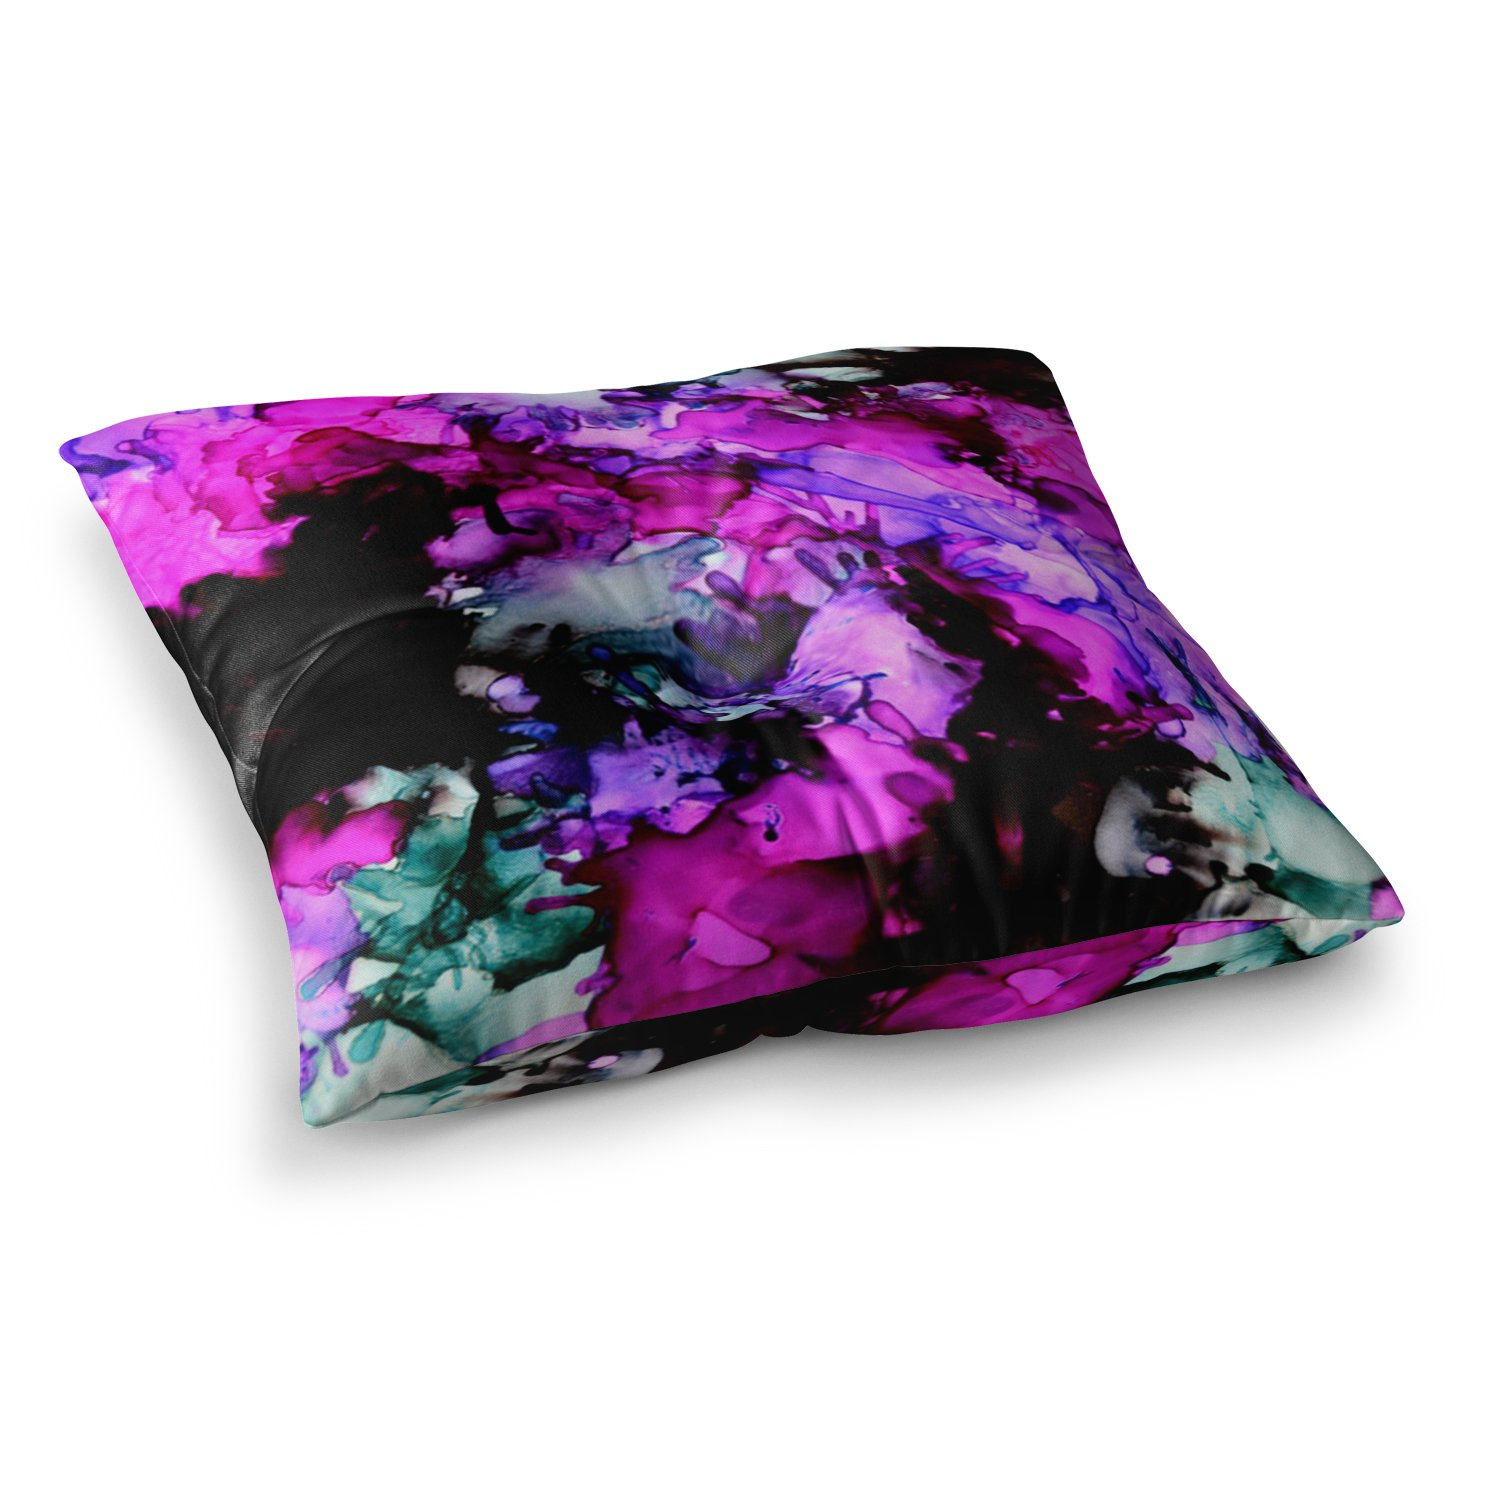 Kess InHouse Claire Day Siren Pink Purple 23 x 23 Square Floor Pillow